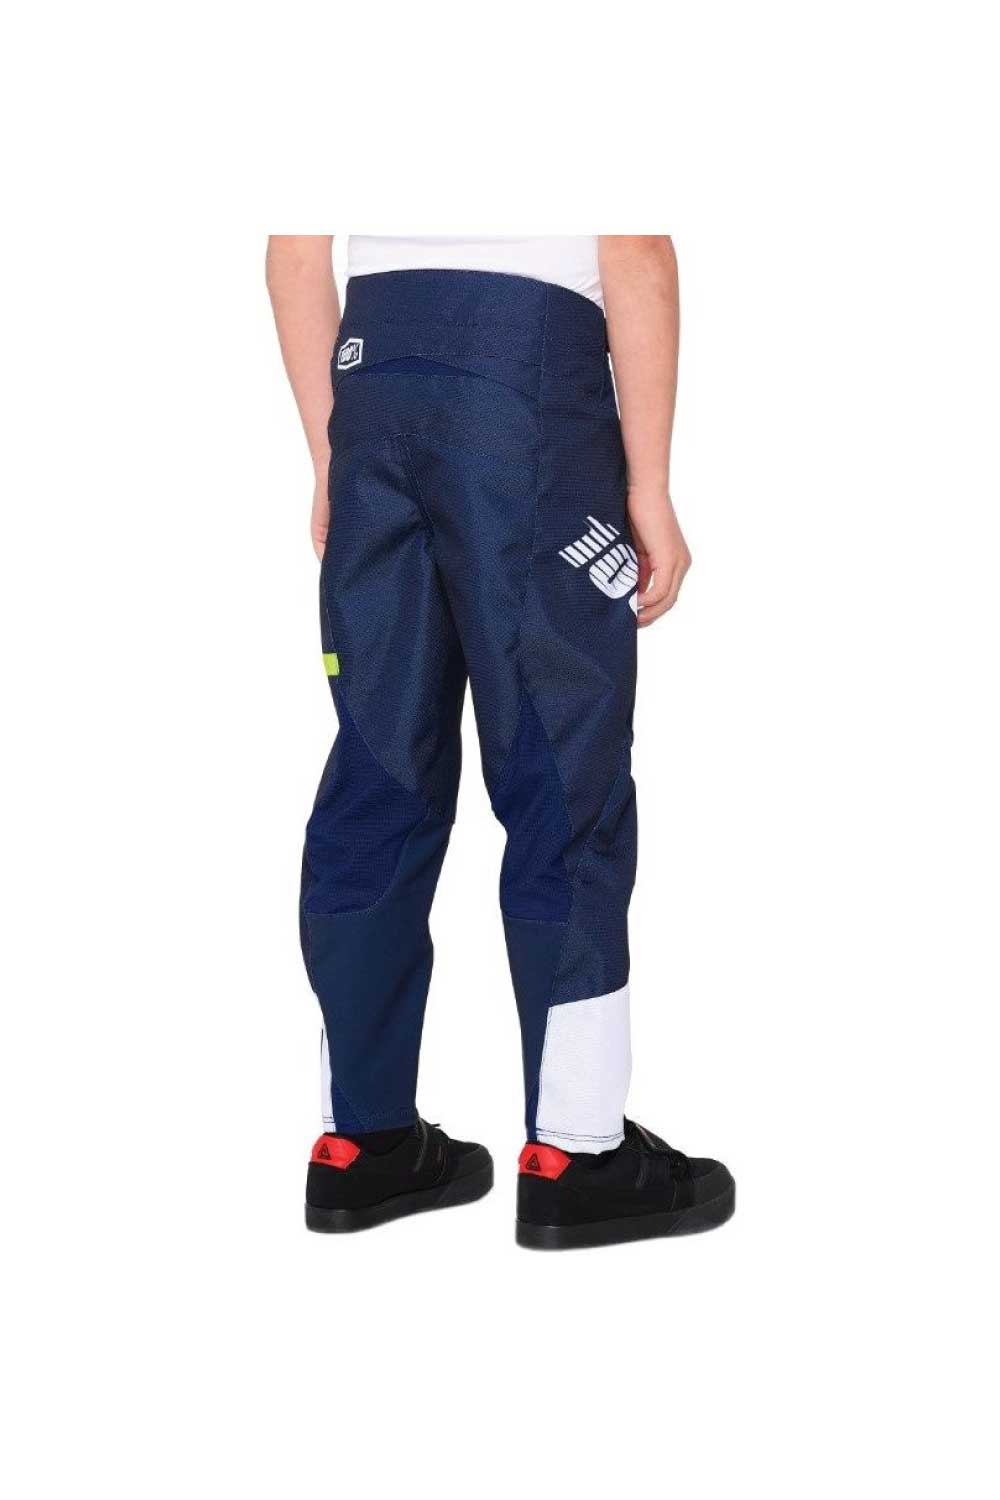 100% 2020 R-Core Youth Downhill MTB Pants